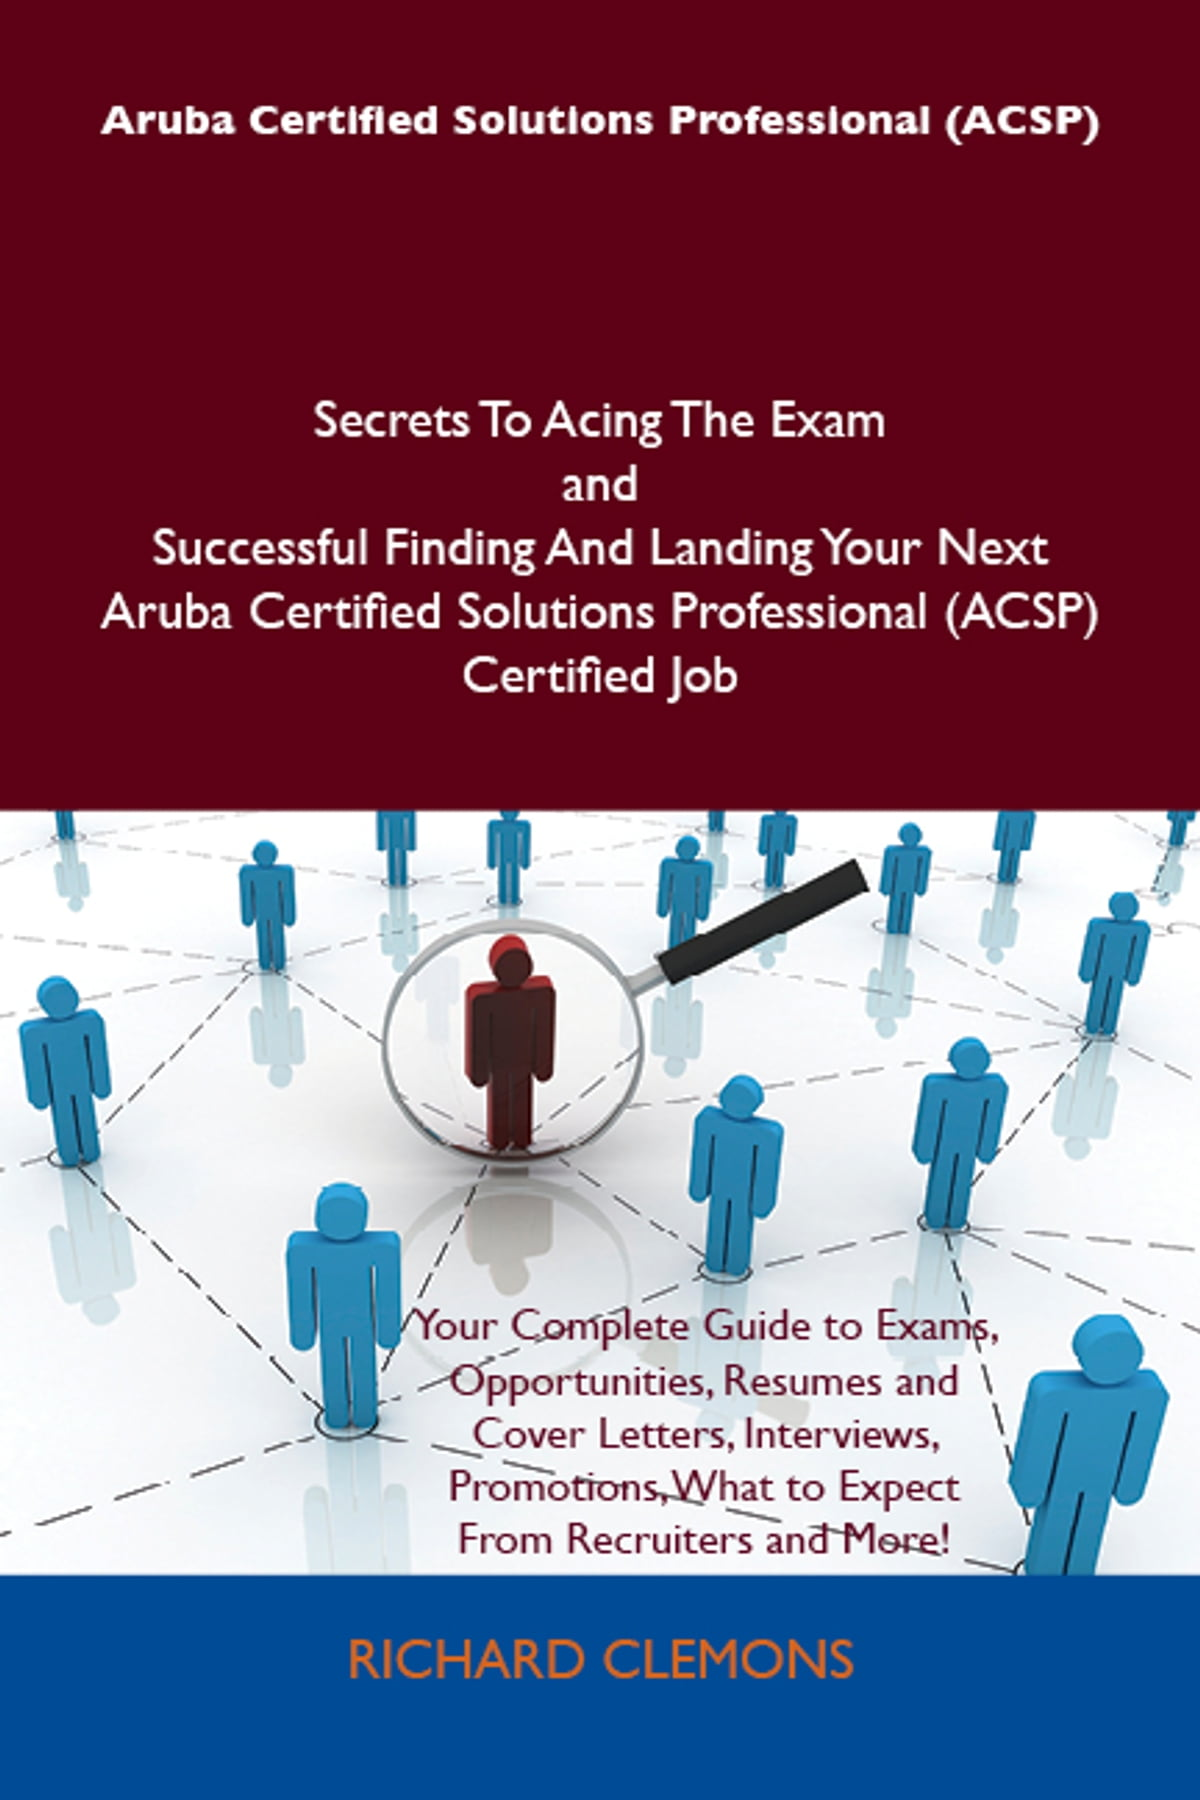 Aruba Certified Solutions Professional Acsp Secrets To Acing The